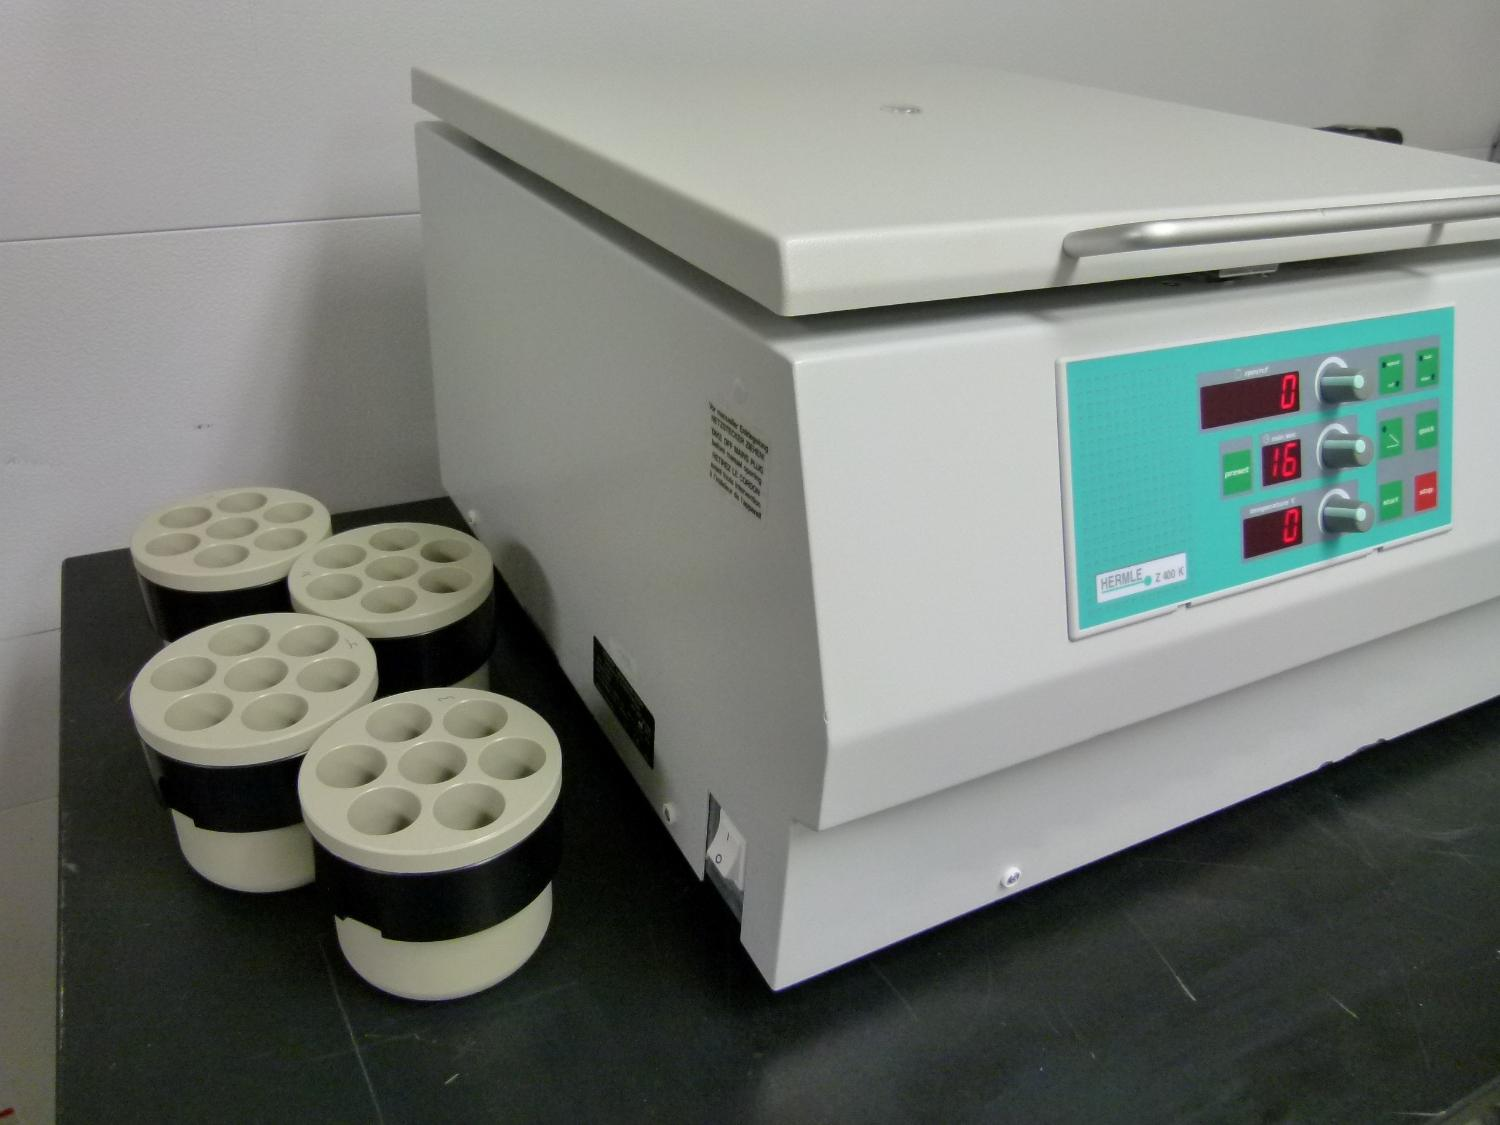 ~ Hermle Z400K Refrigerated Bench Top Centrifuge with Rotor and Buckets